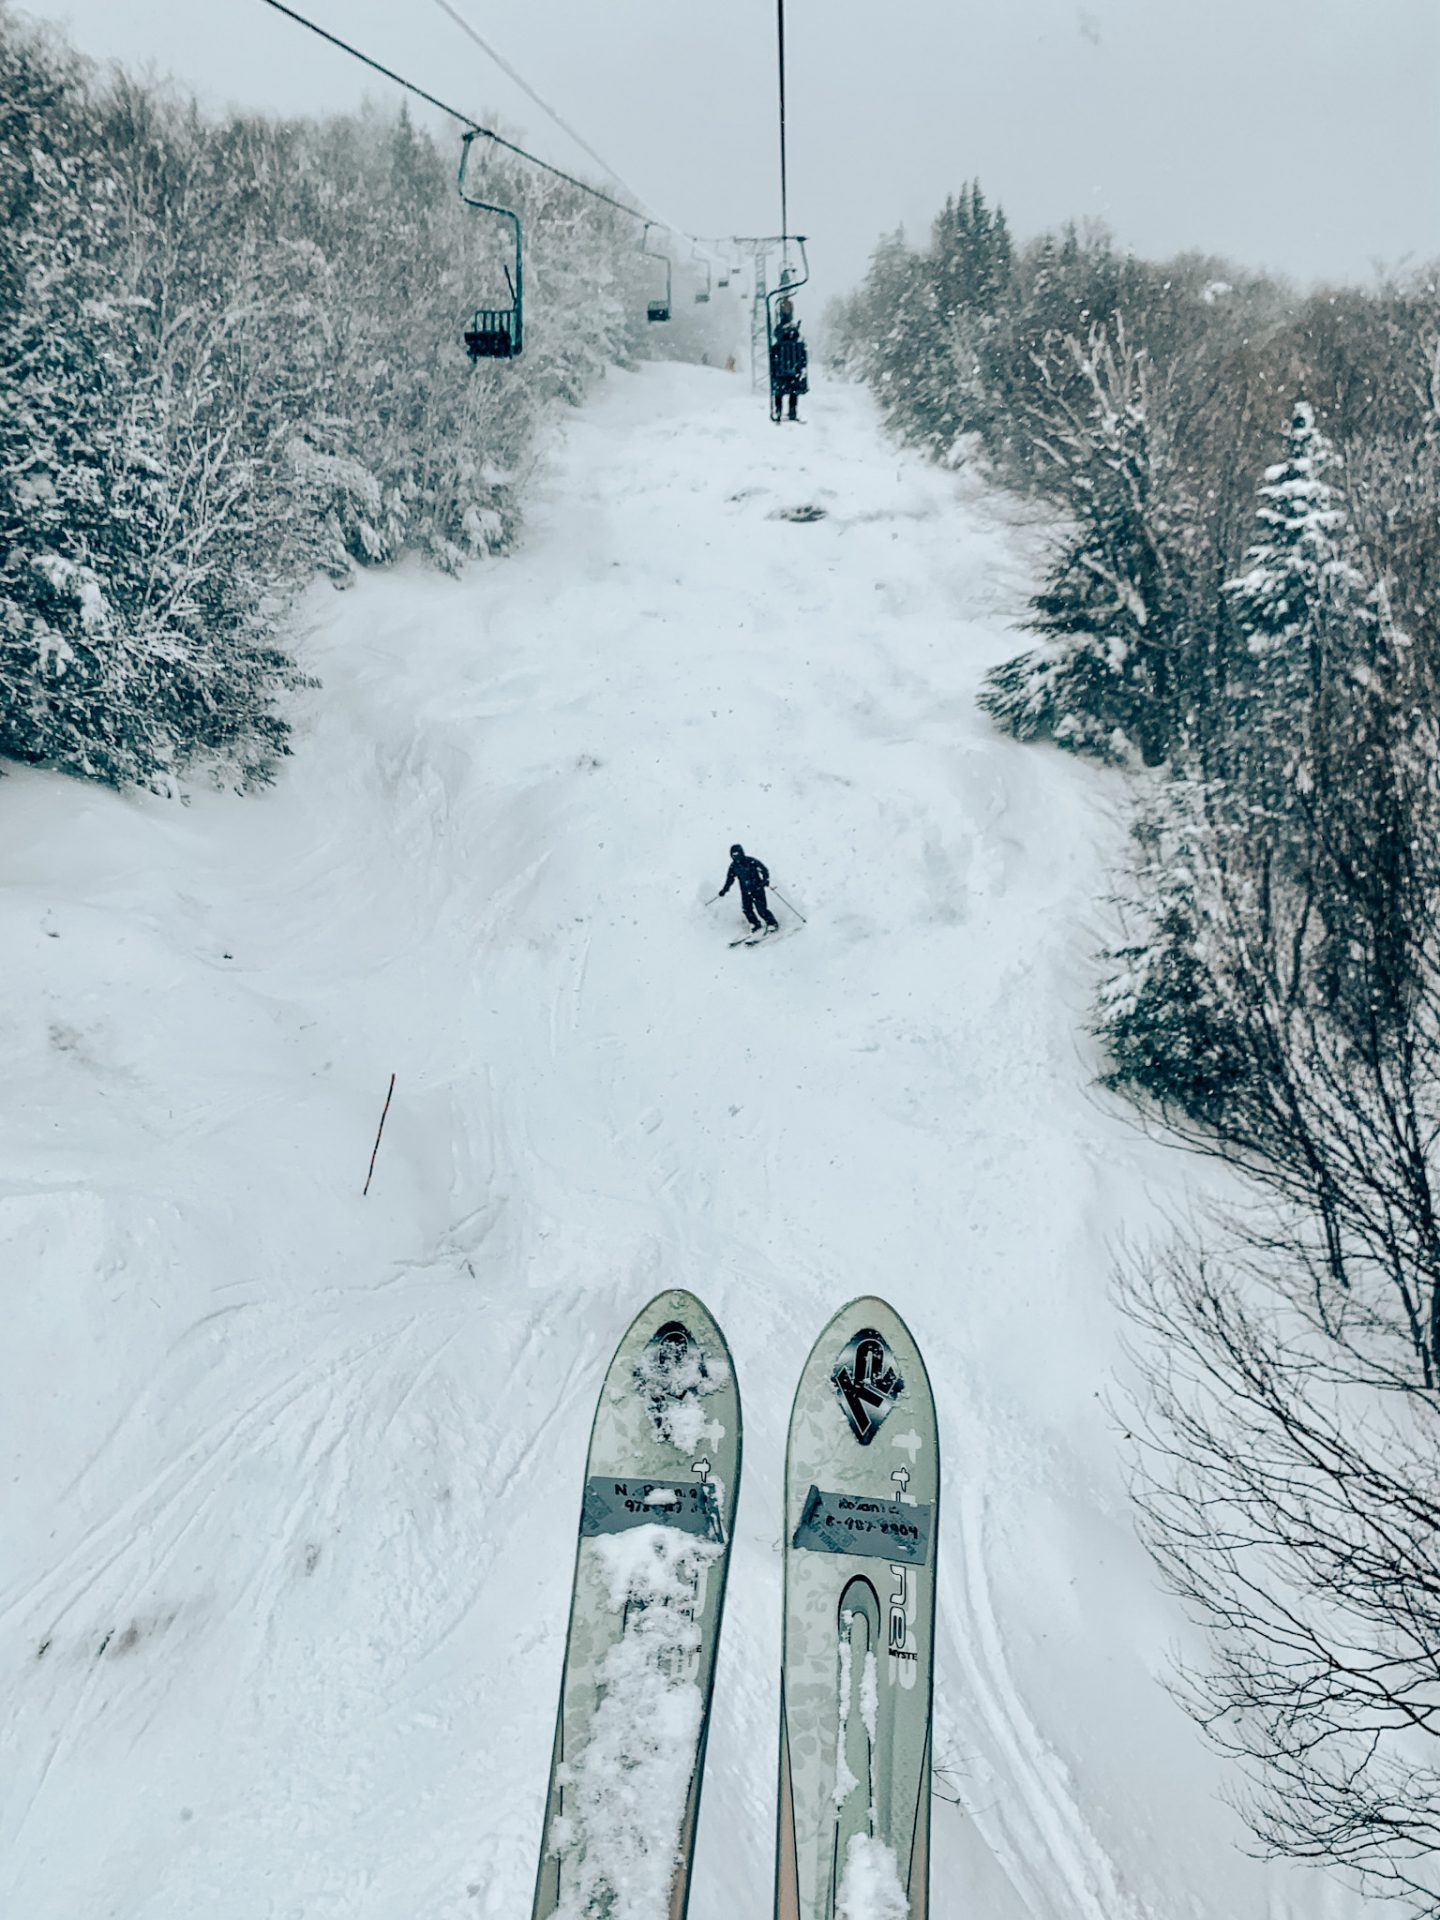 Photo of skis from chairlift looking down at trail